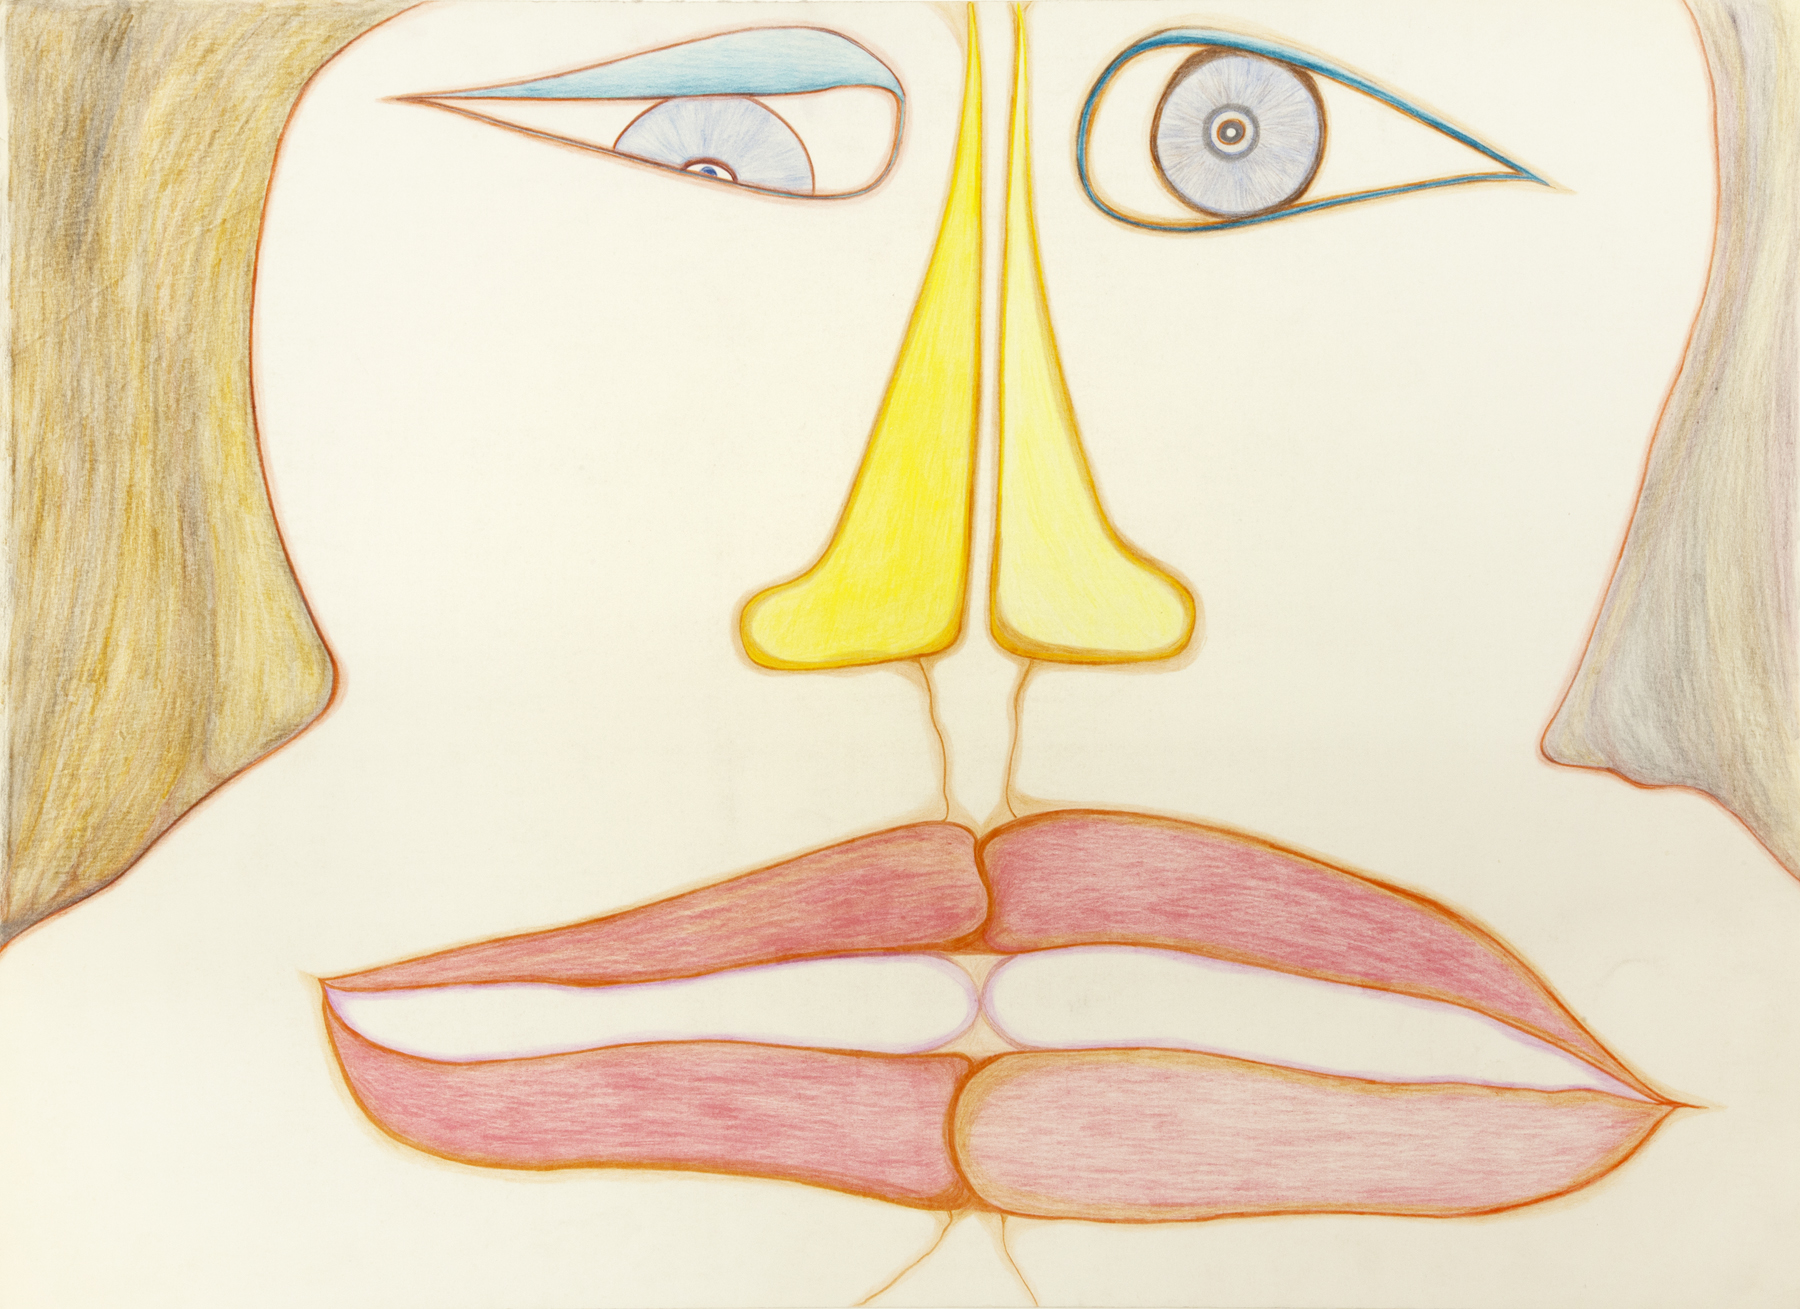 Huguette Caland   Untitled , 1985 colored pencil on paper 20 x 27.5 inches 50.8 x 69.9 cm